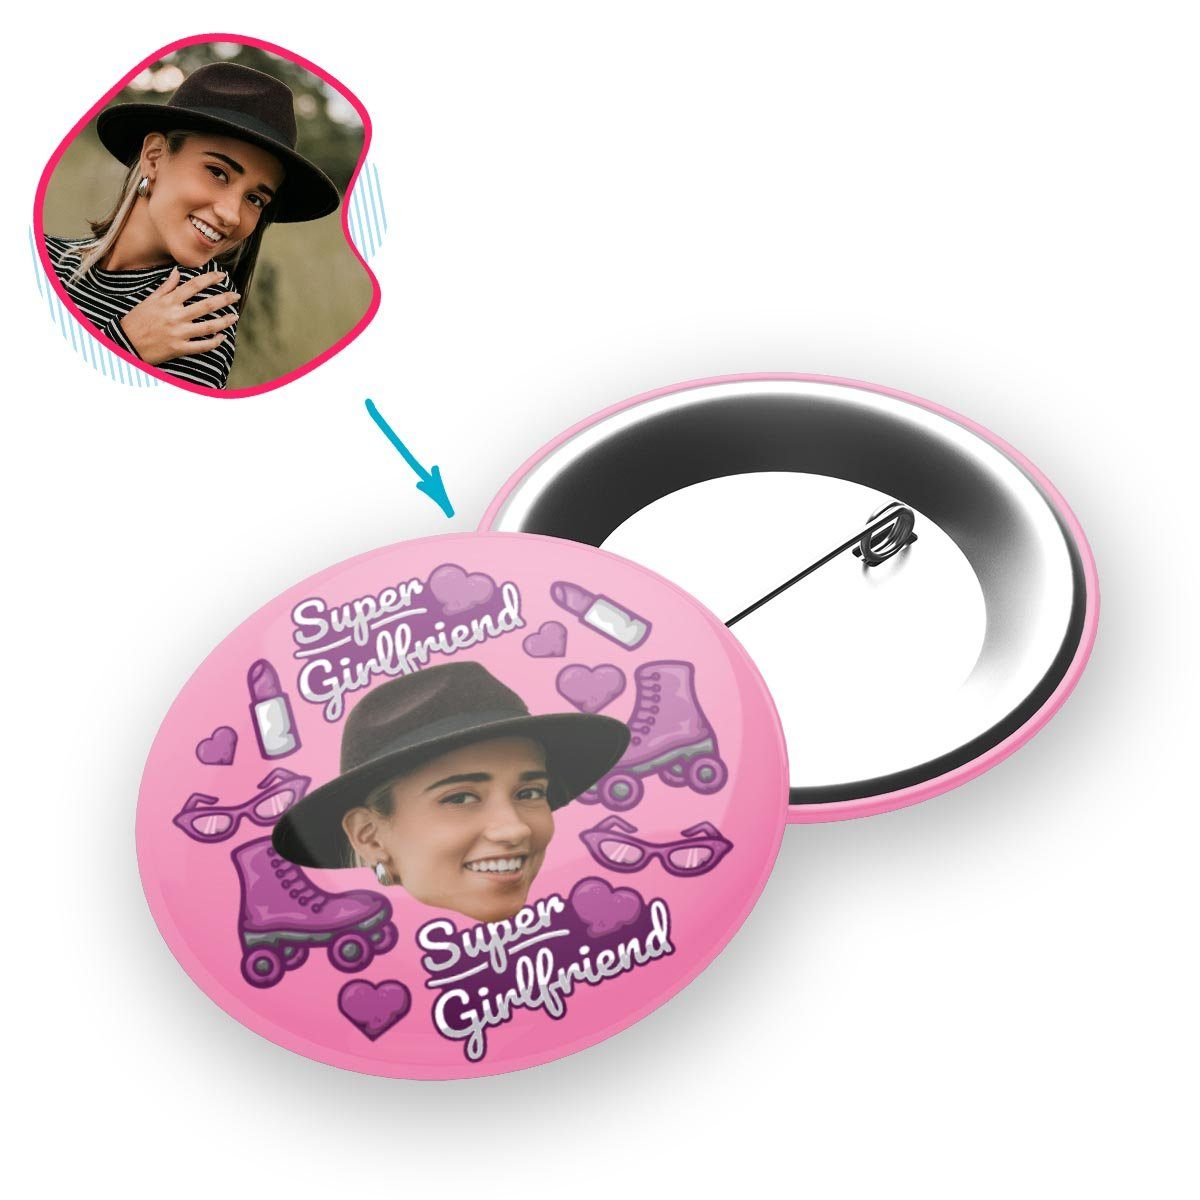 Pink Girlfriend personalized pin with photo of face printed on it